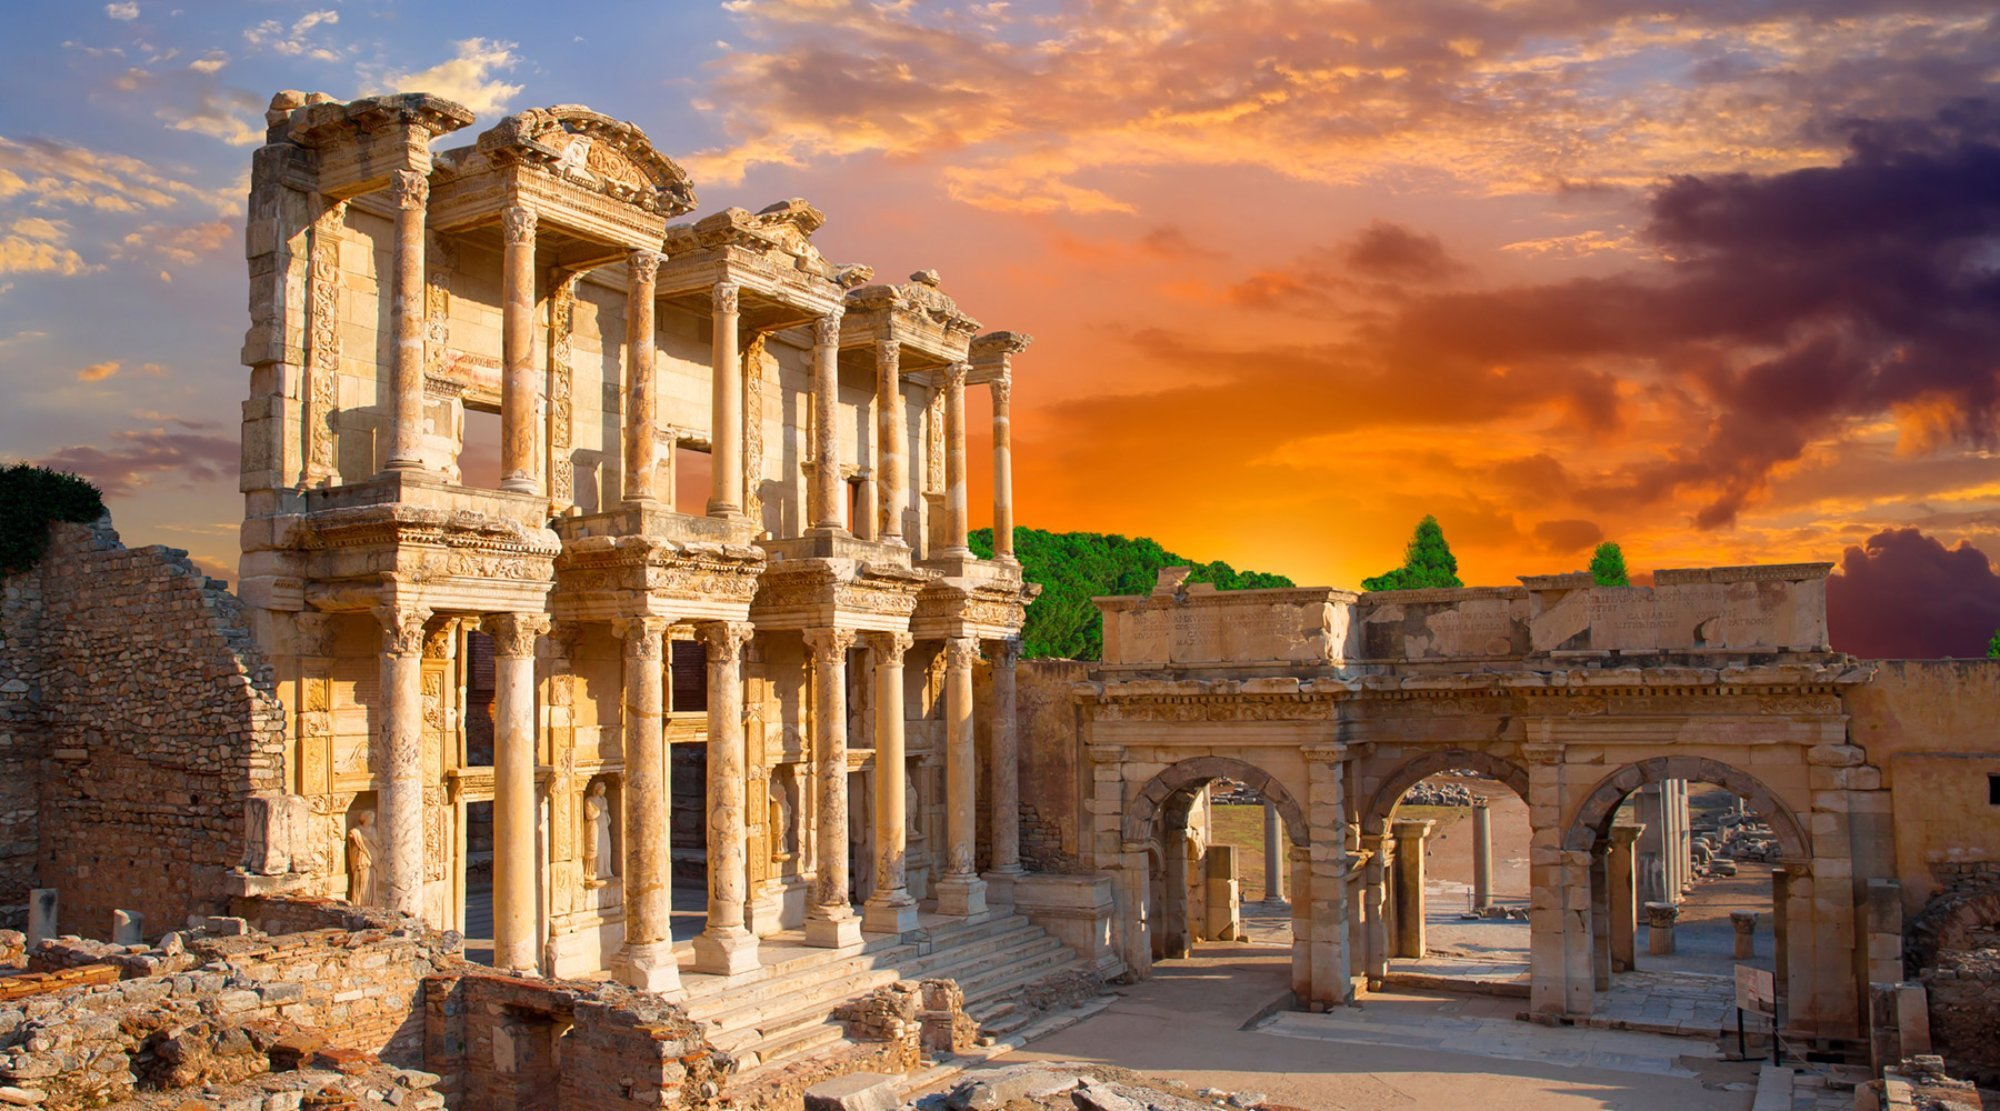 The remaining ruins of the Library of Celsus